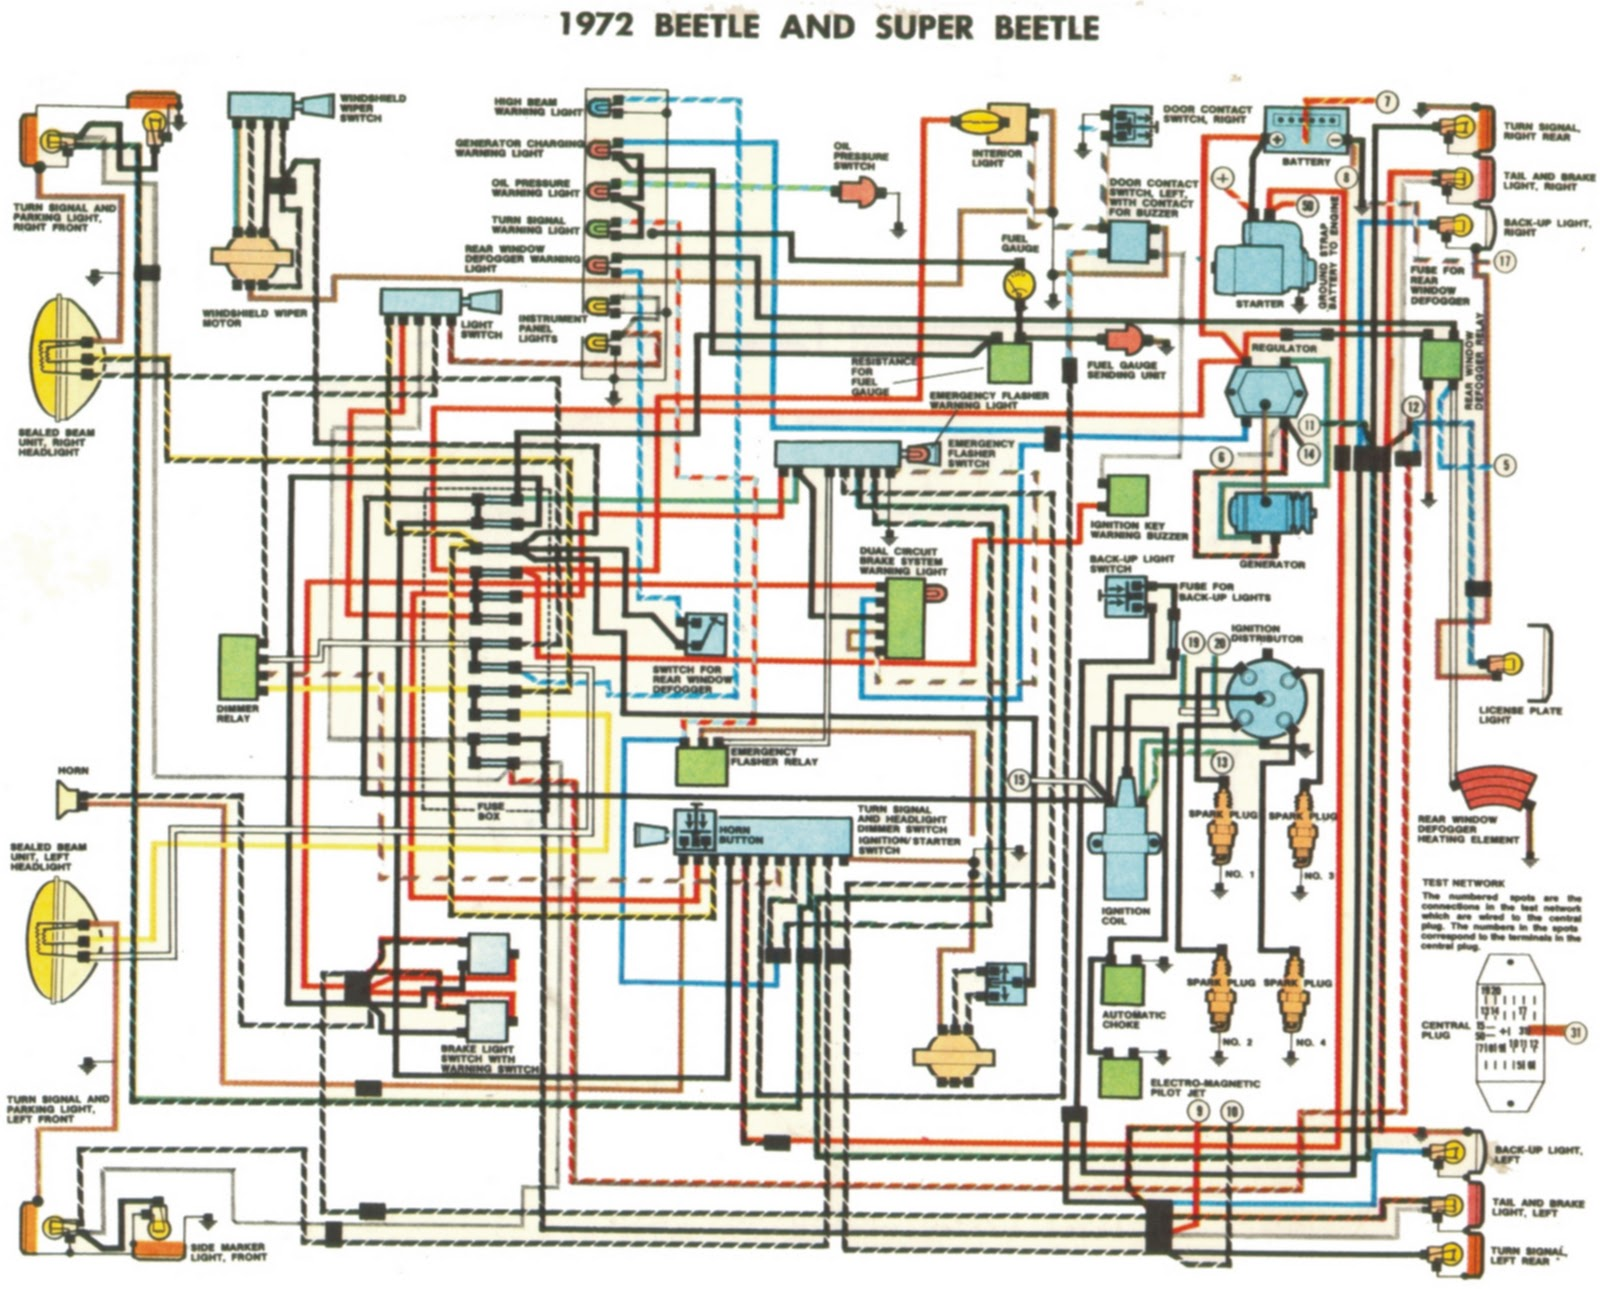 1972 beetle and super beetle wiring diagrams wiring diagram for 1971 vw beetle readingrat net 1972 beetle wiring diagram at letsshop.co